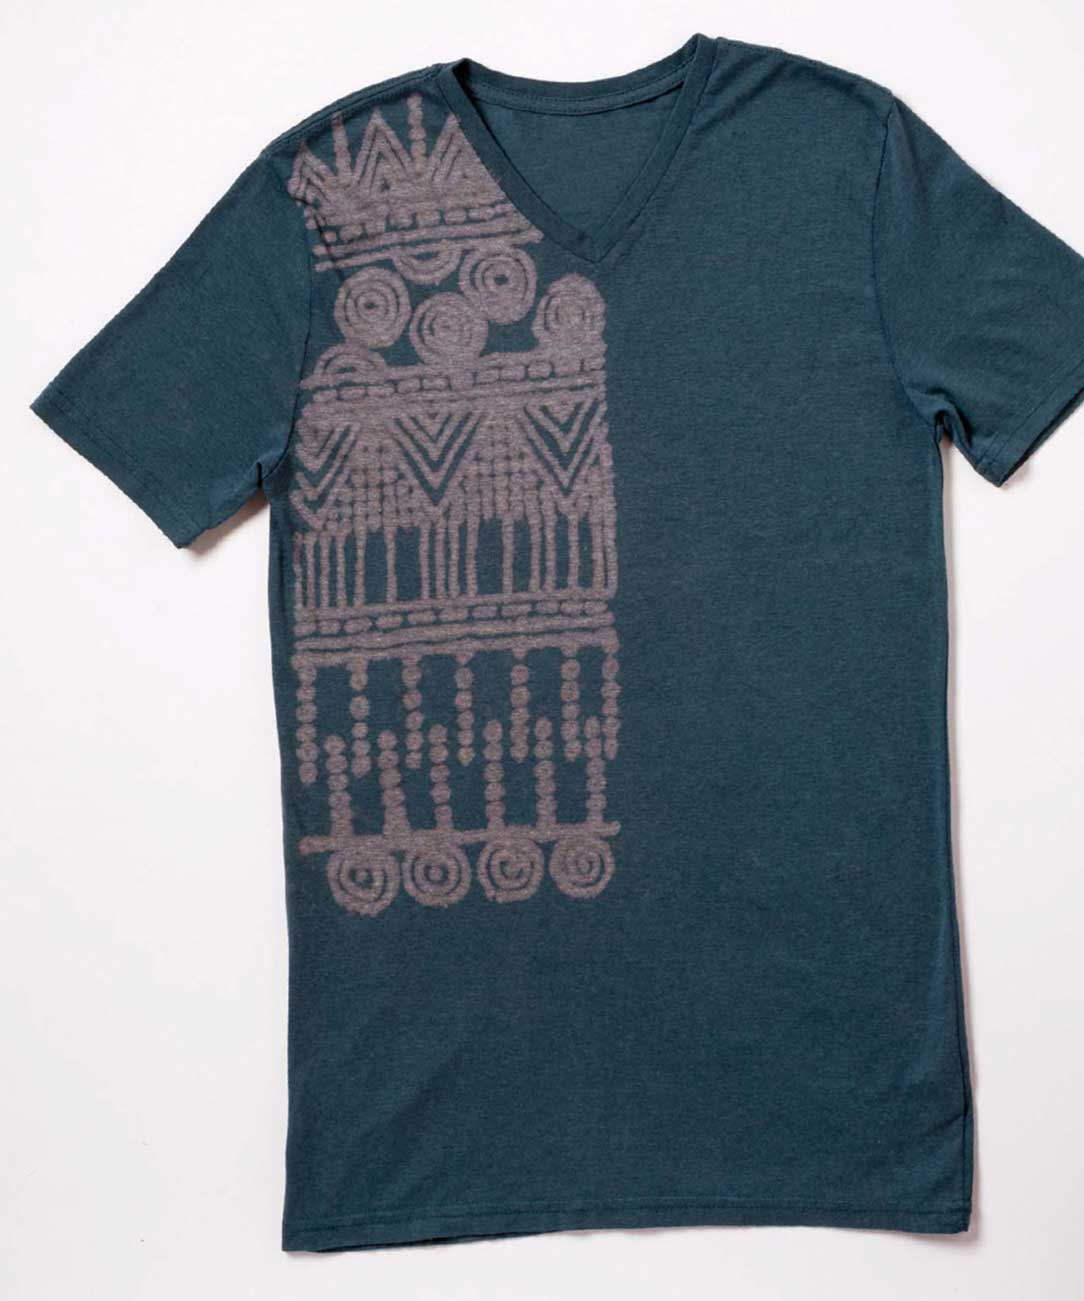 doodles on t-shirts